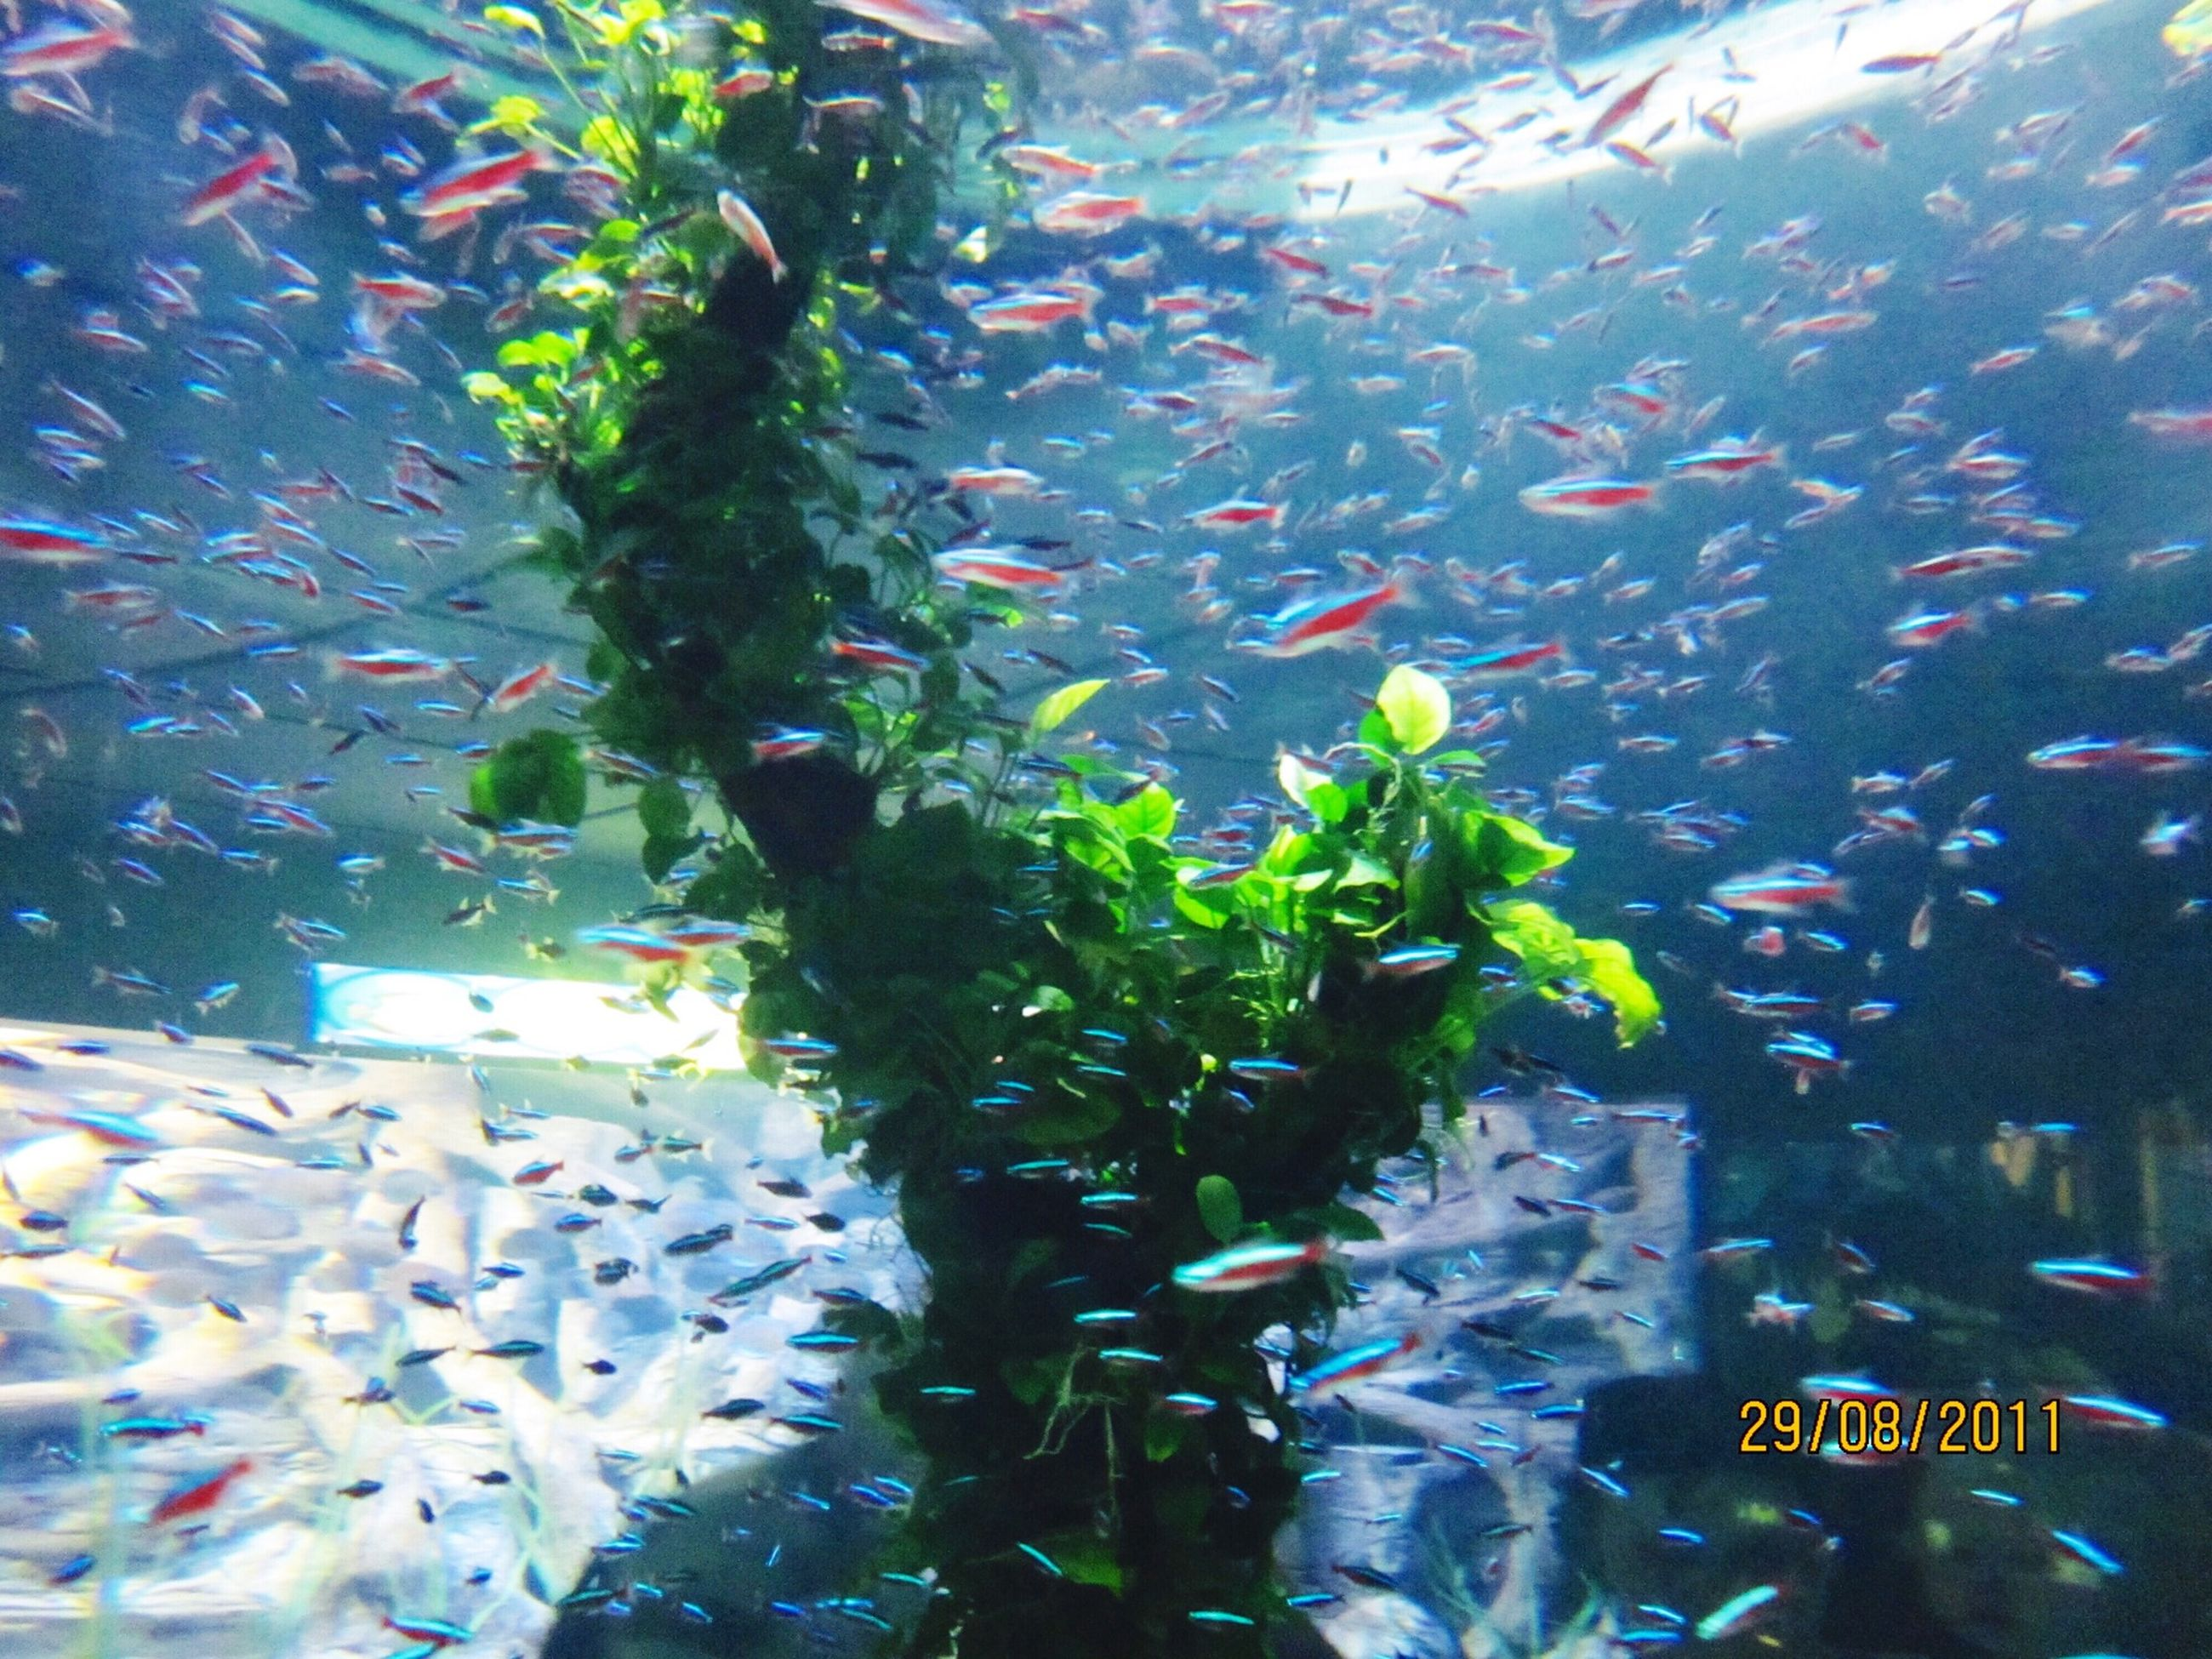 water, nature, high angle view, beauty in nature, growth, animal themes, plant, underwater, fish, leaf, animals in the wild, day, transparent, no people, outdoors, green color, wildlife, swimming, sunlight